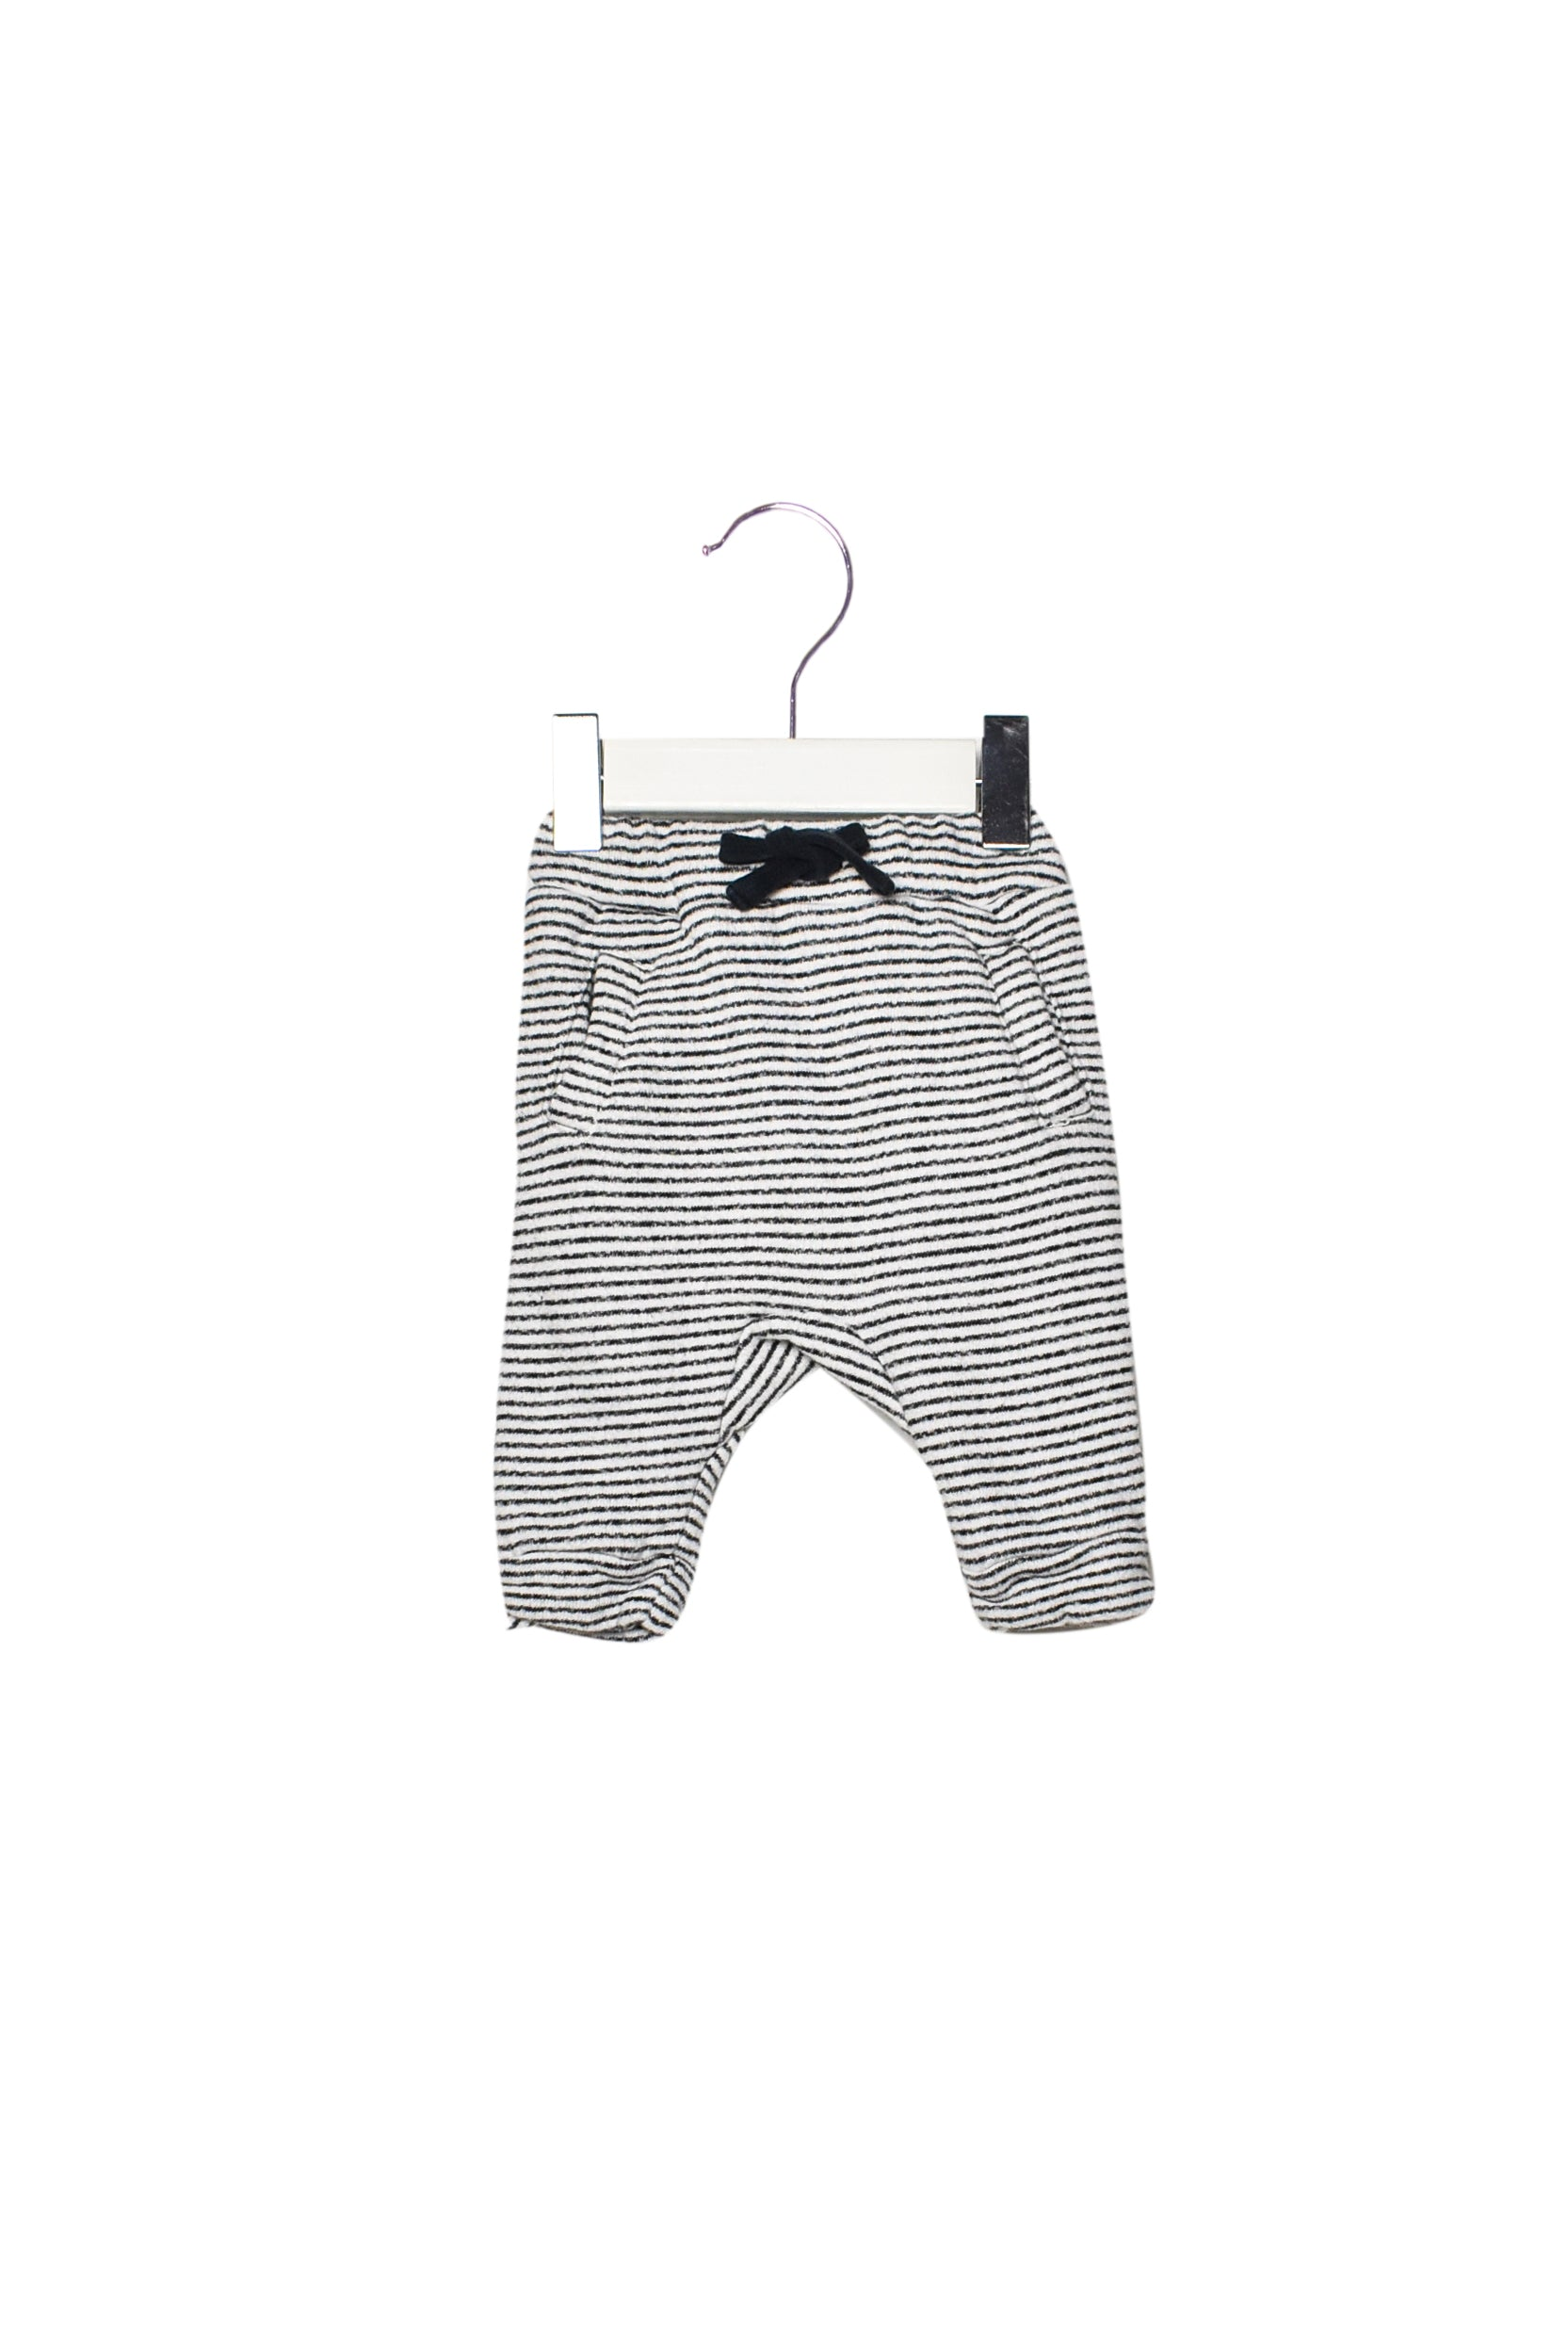 10011946 Seed Baby ~ Sweatpants 0-3M at Retykle